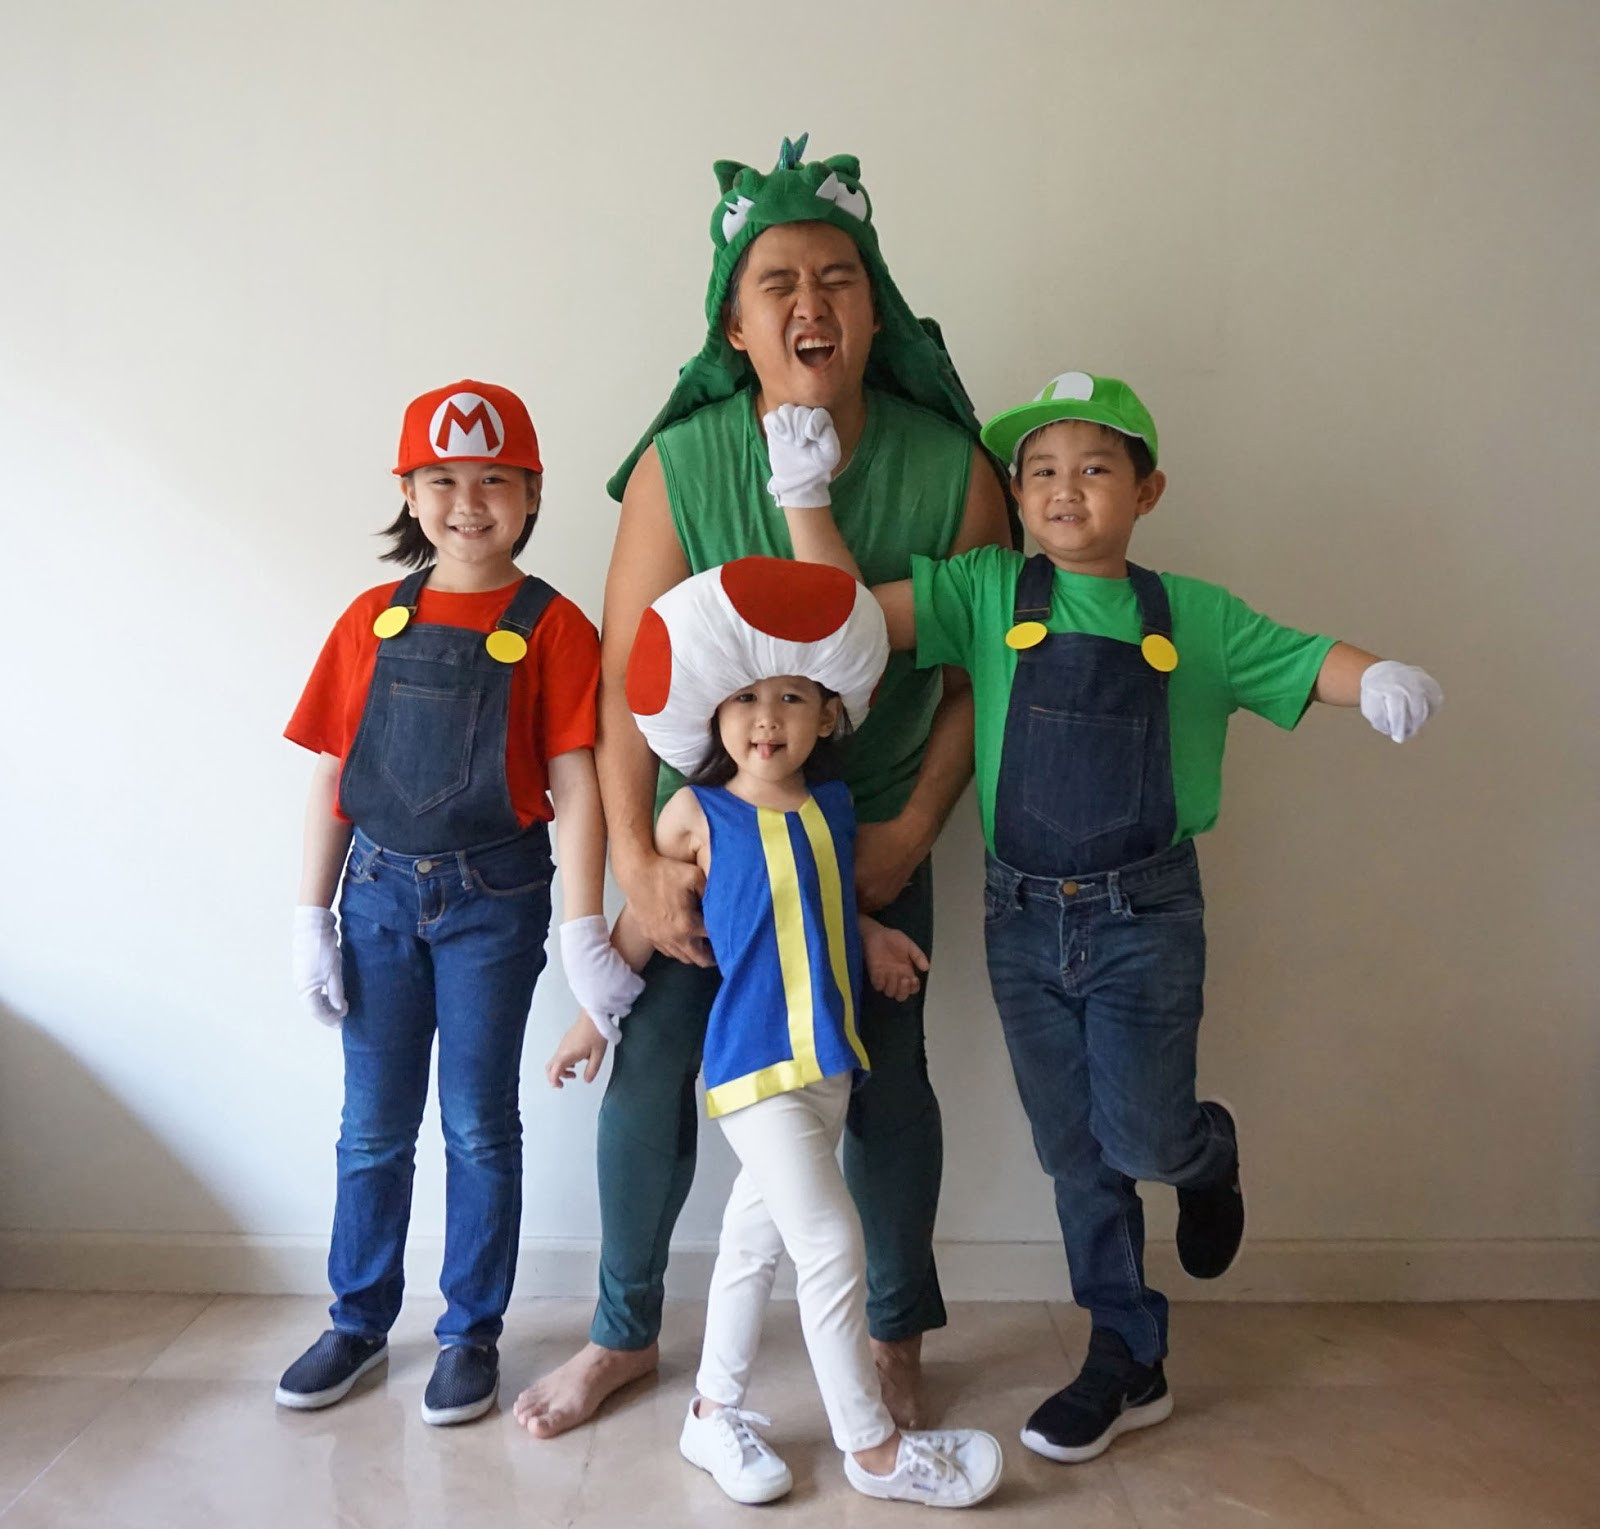 Super Mario Costume DIY  MrsMommyHolic DIY Mario Bros and Toad Costume